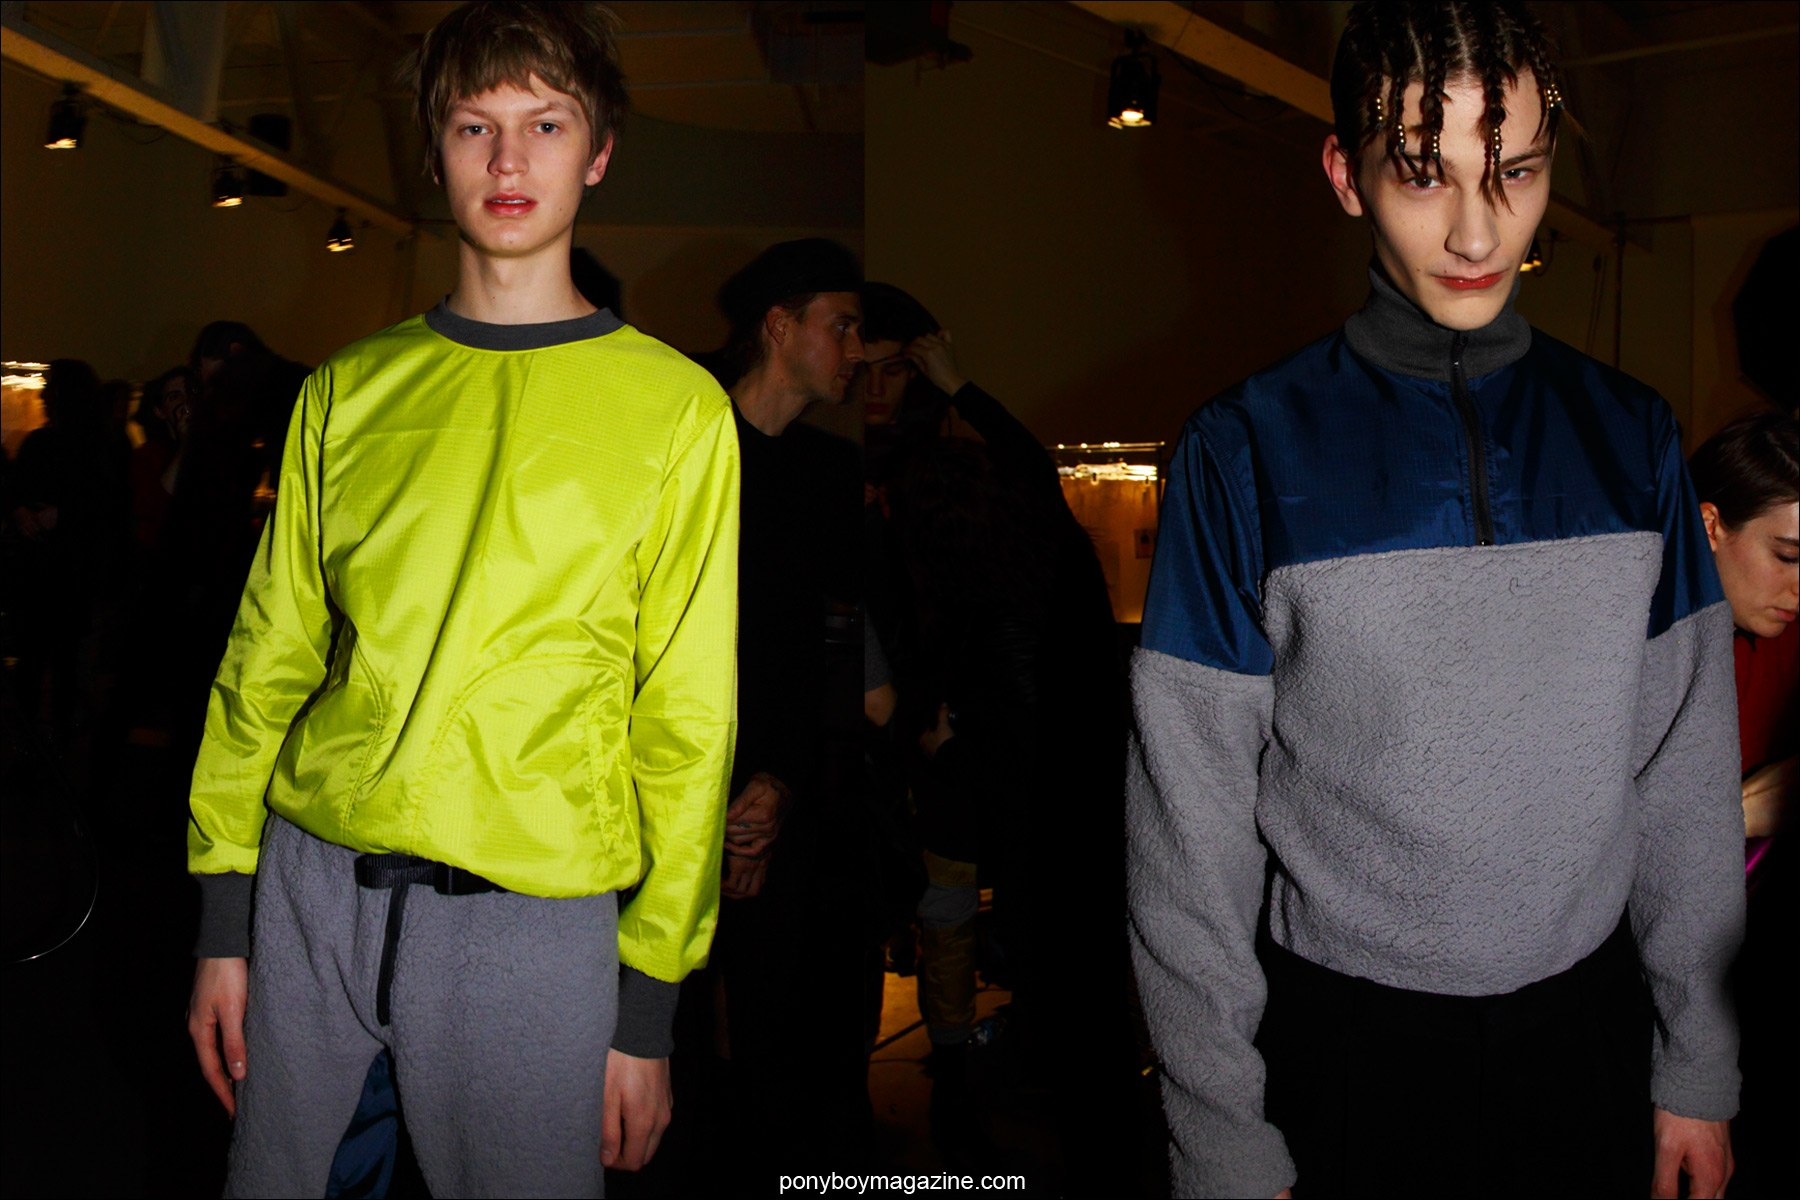 Male models Jonas Gloer and Dominik Hahn photographed backstage at the Martin Keehn Fall/Winter 15 menswear show. Photography by Alexander Thompson for Ponyboy magazine.